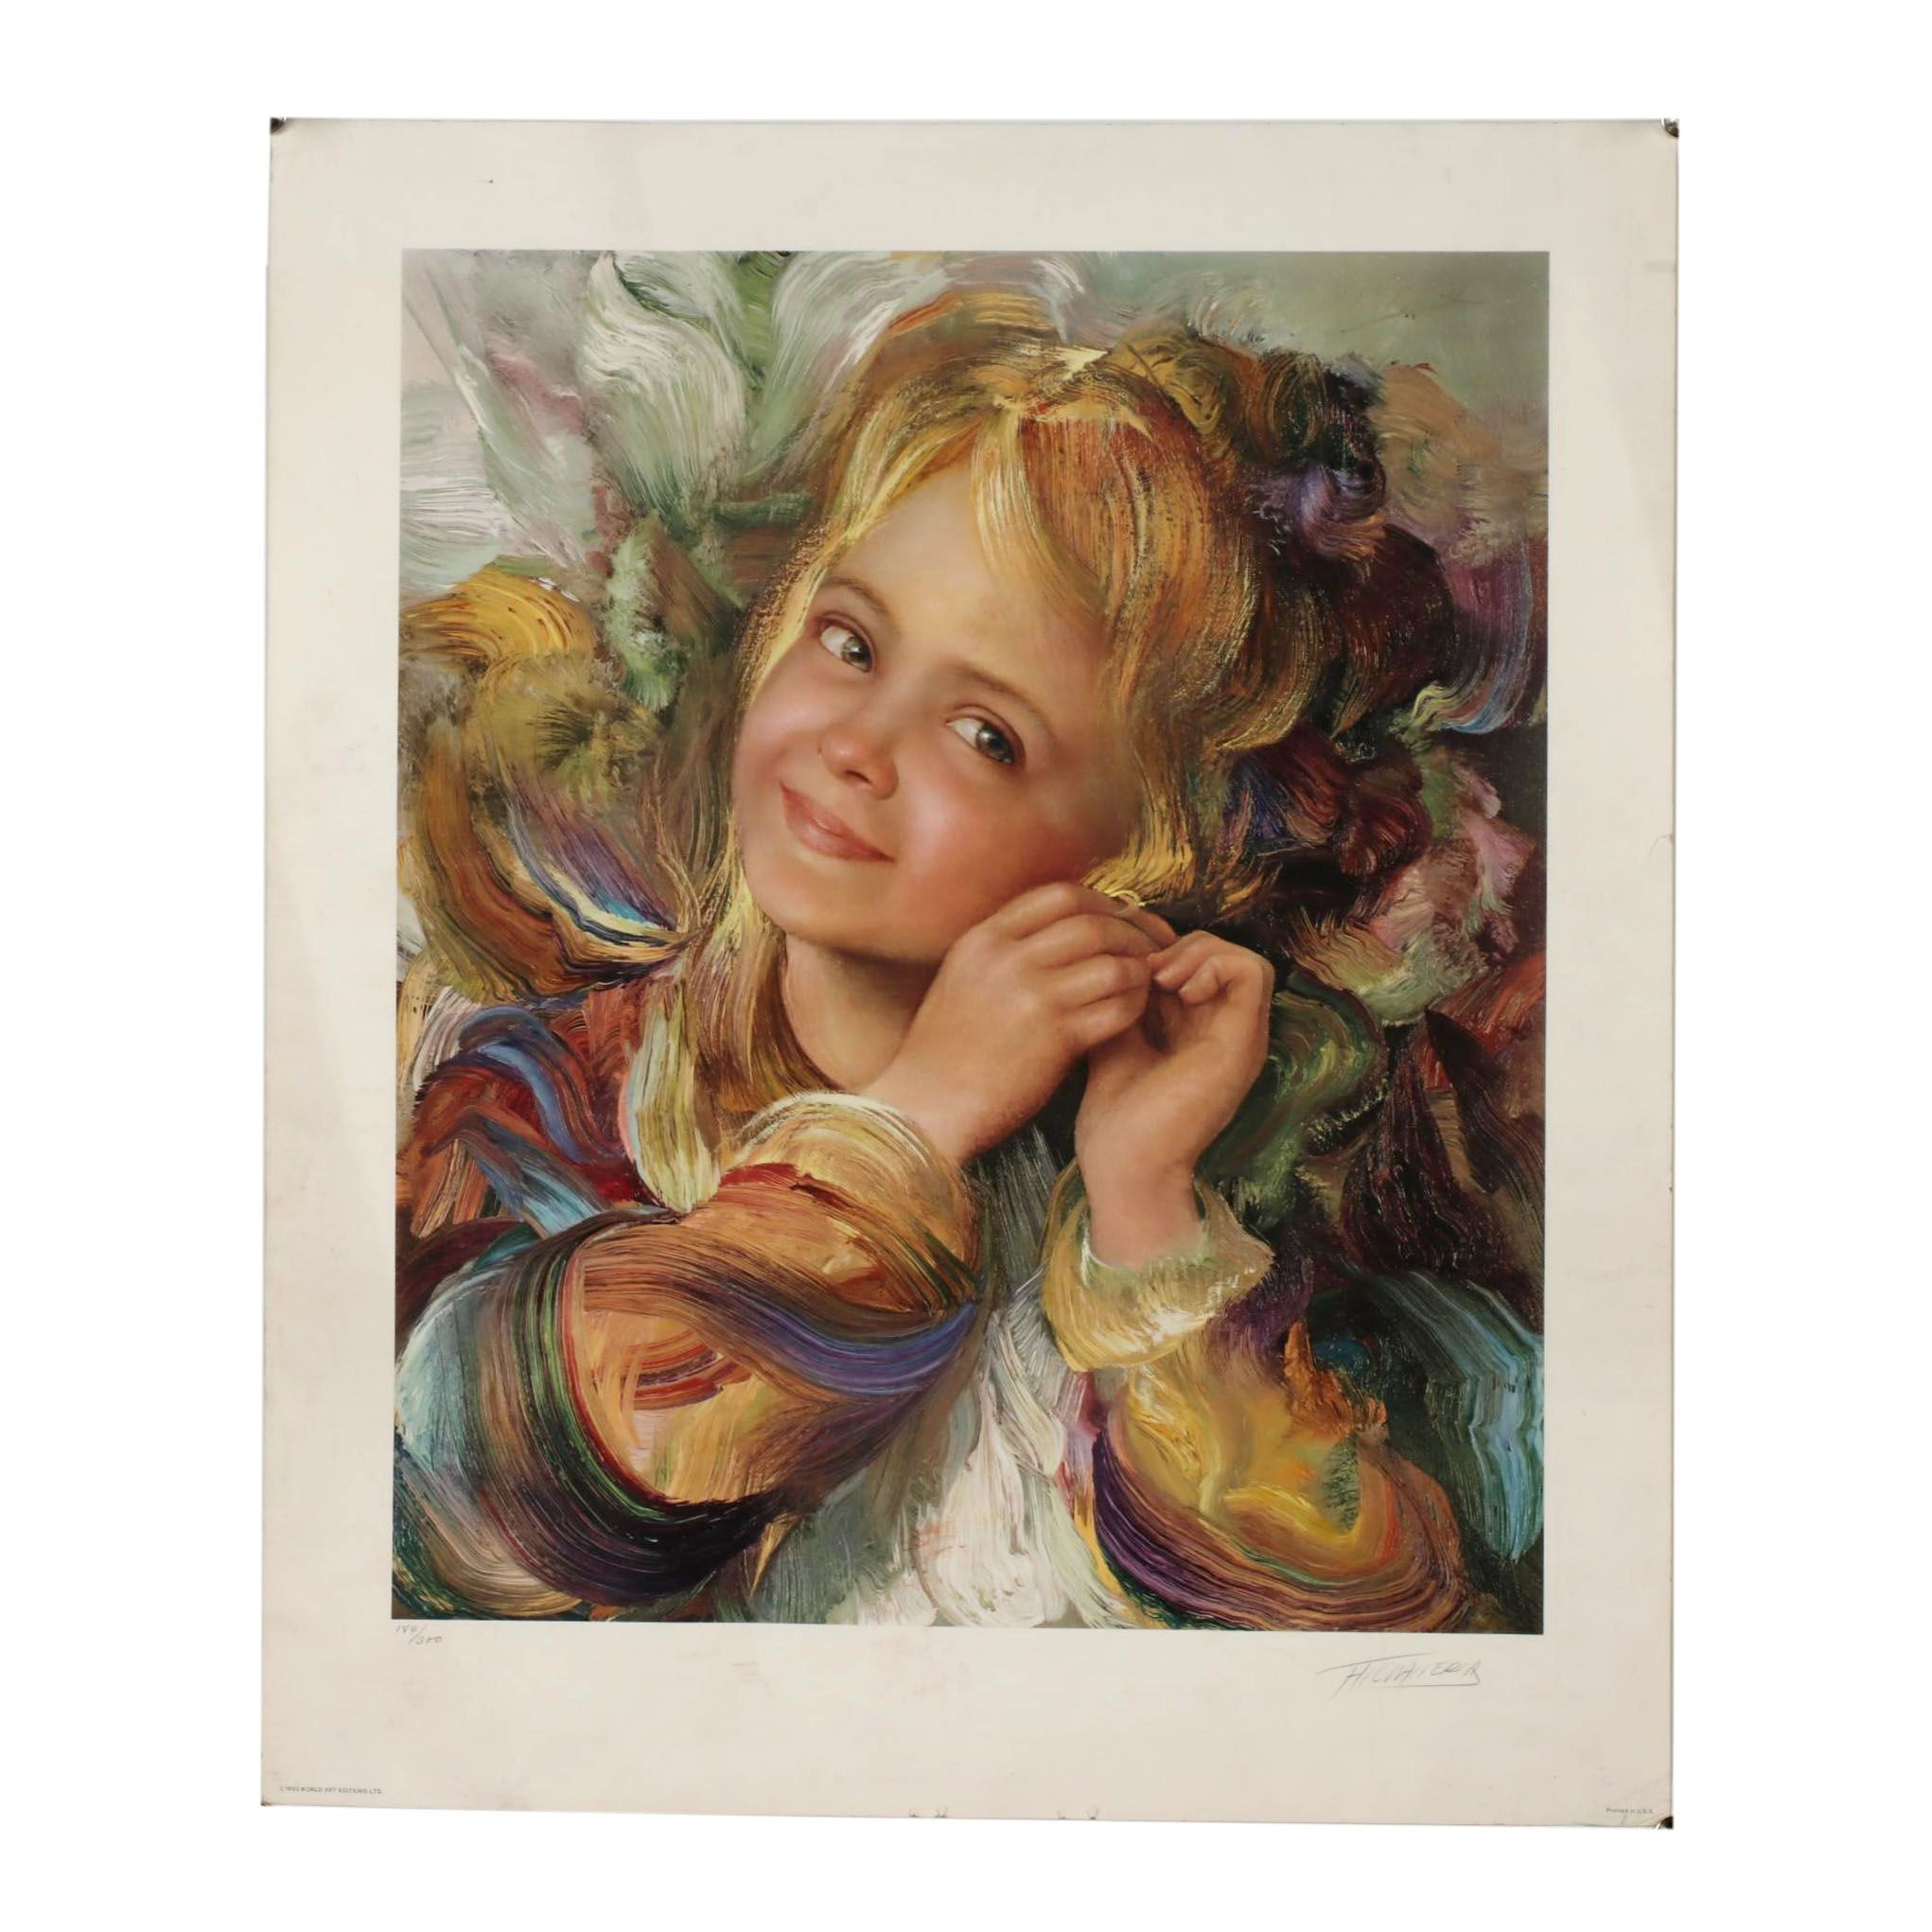 1982 Offset Lithograph of Girl Portrait